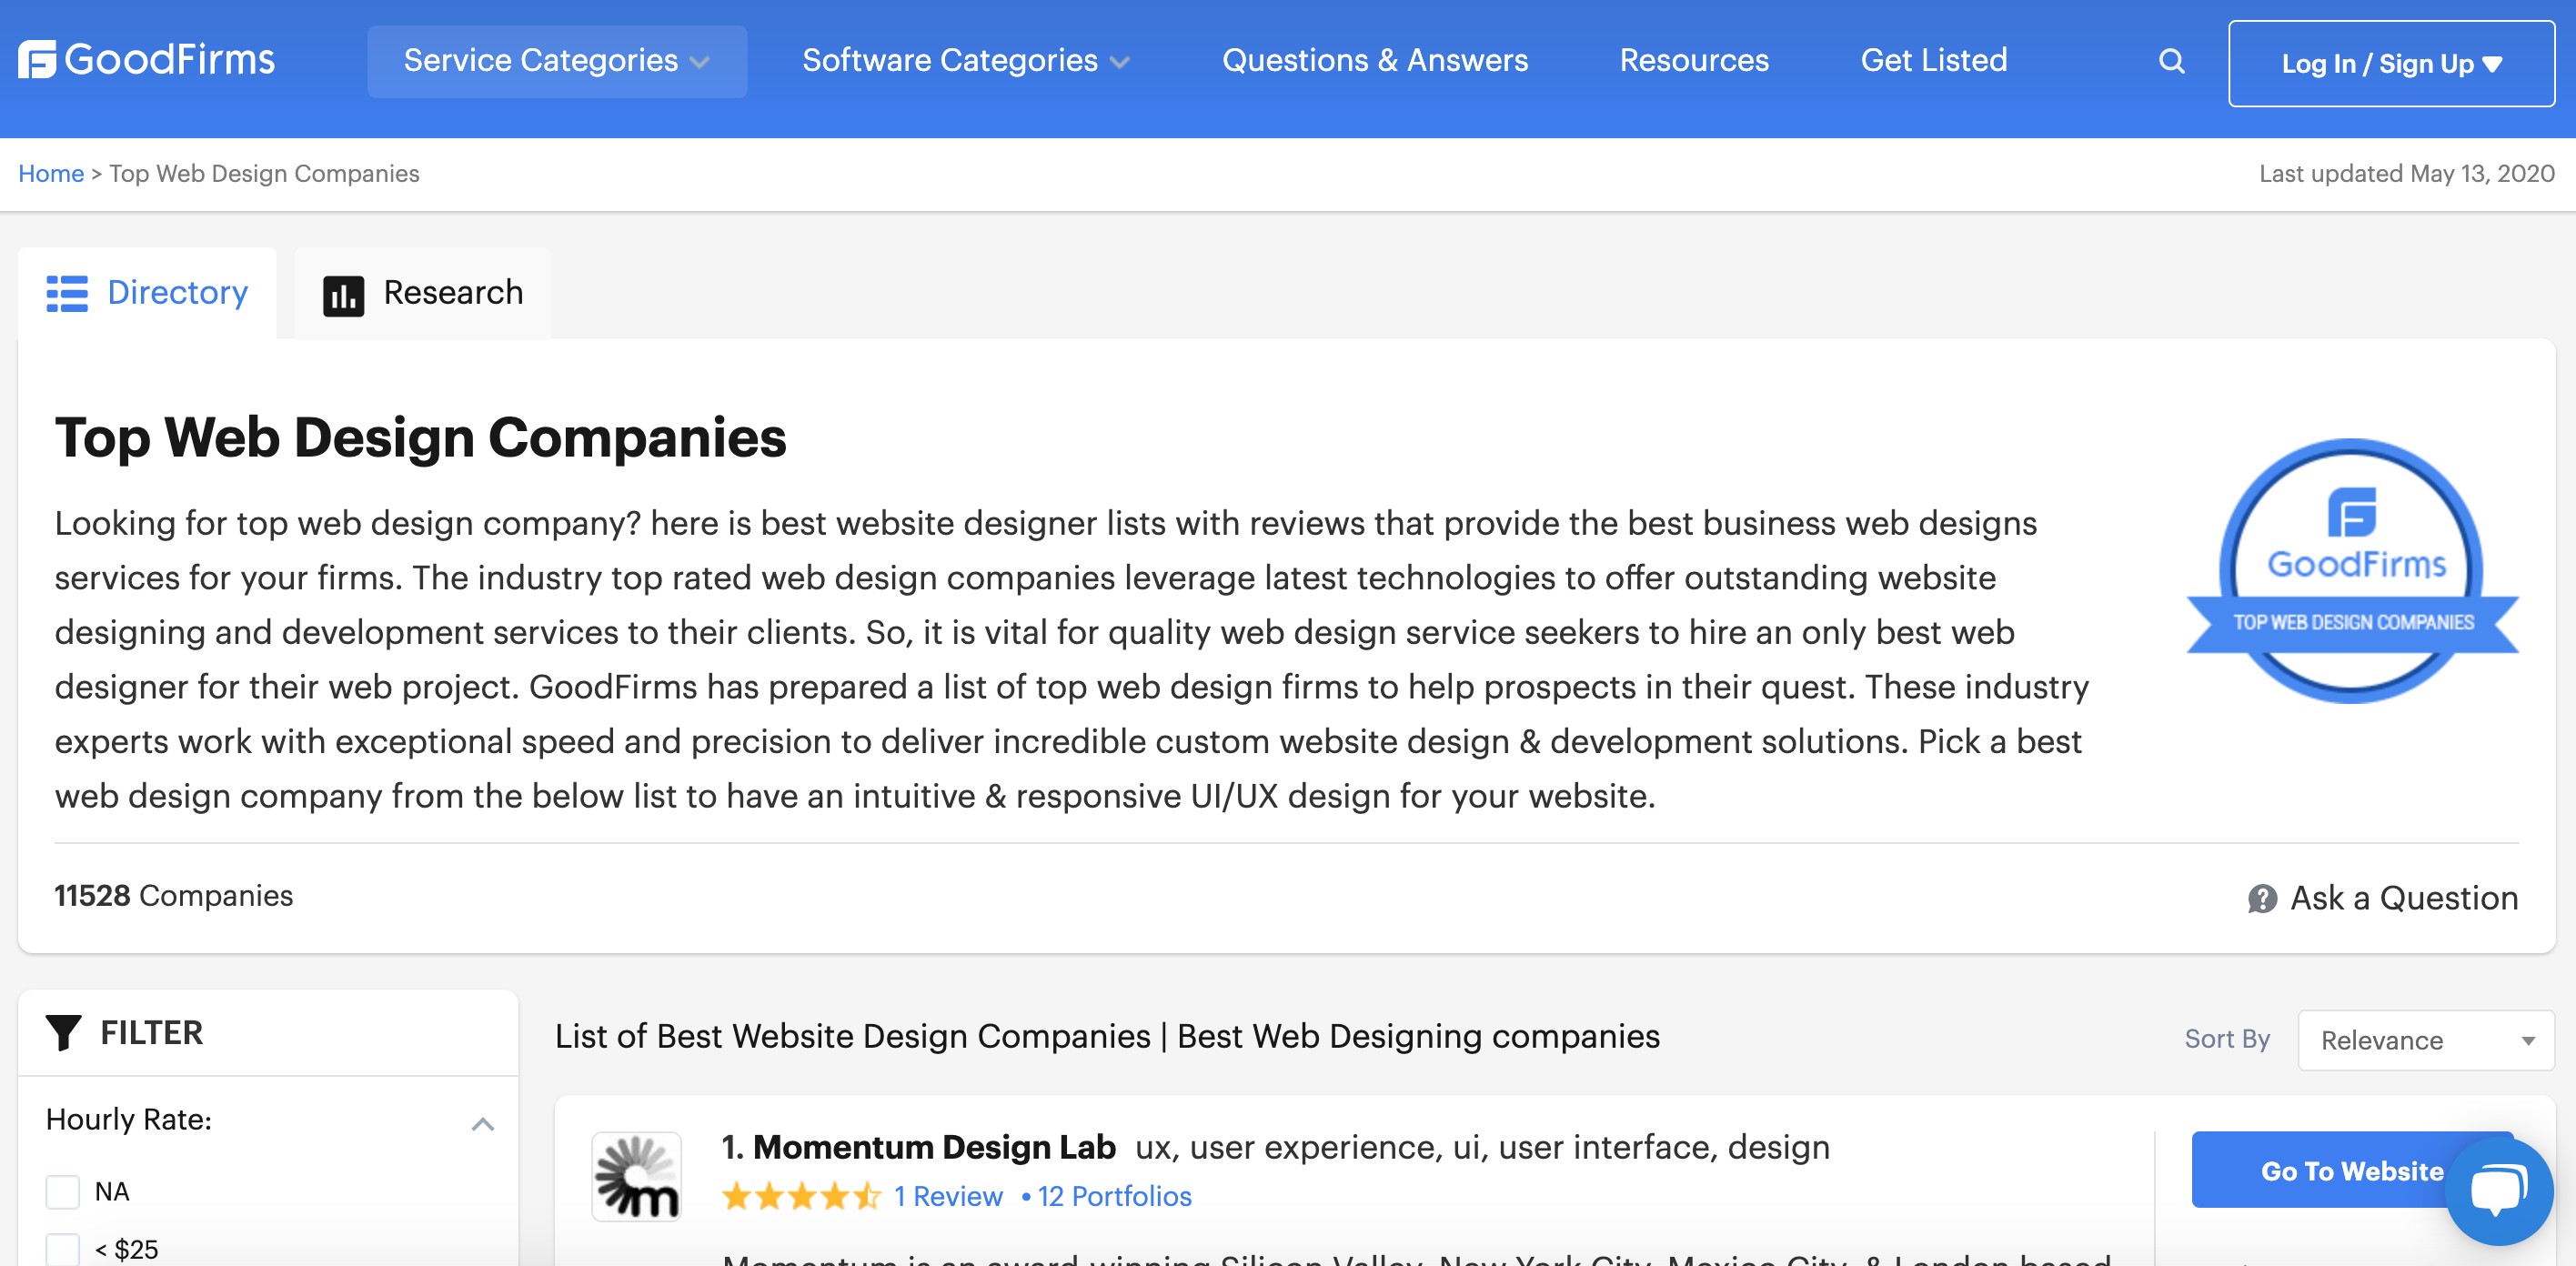 GoodFirms Top Web Design Companies Listing